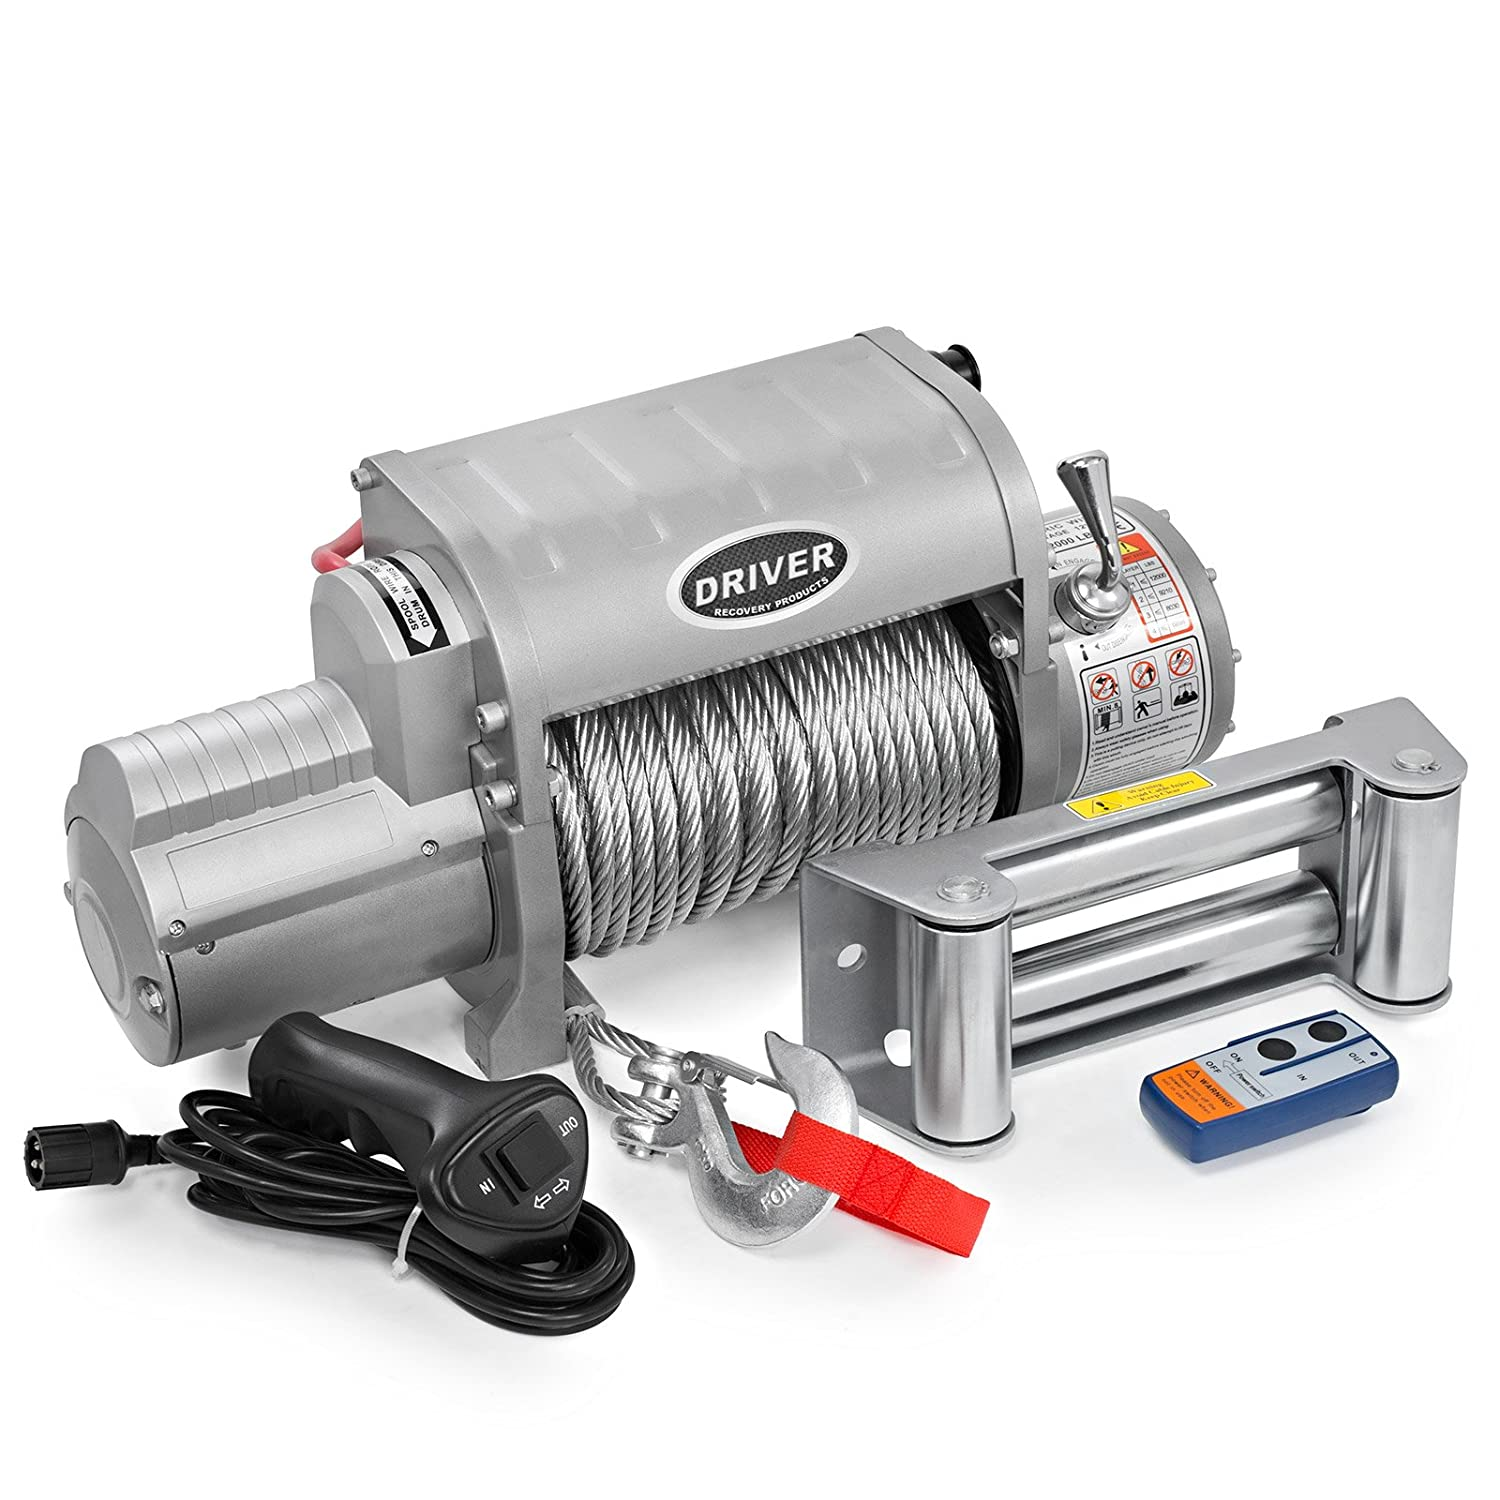 Amazon.com: LD12-ELITE Electric Heavy Duty Recovery Winch - 12,000 lbs.  Capacity - Wireless Remote Control - by Driver Recovery Products: Automotive